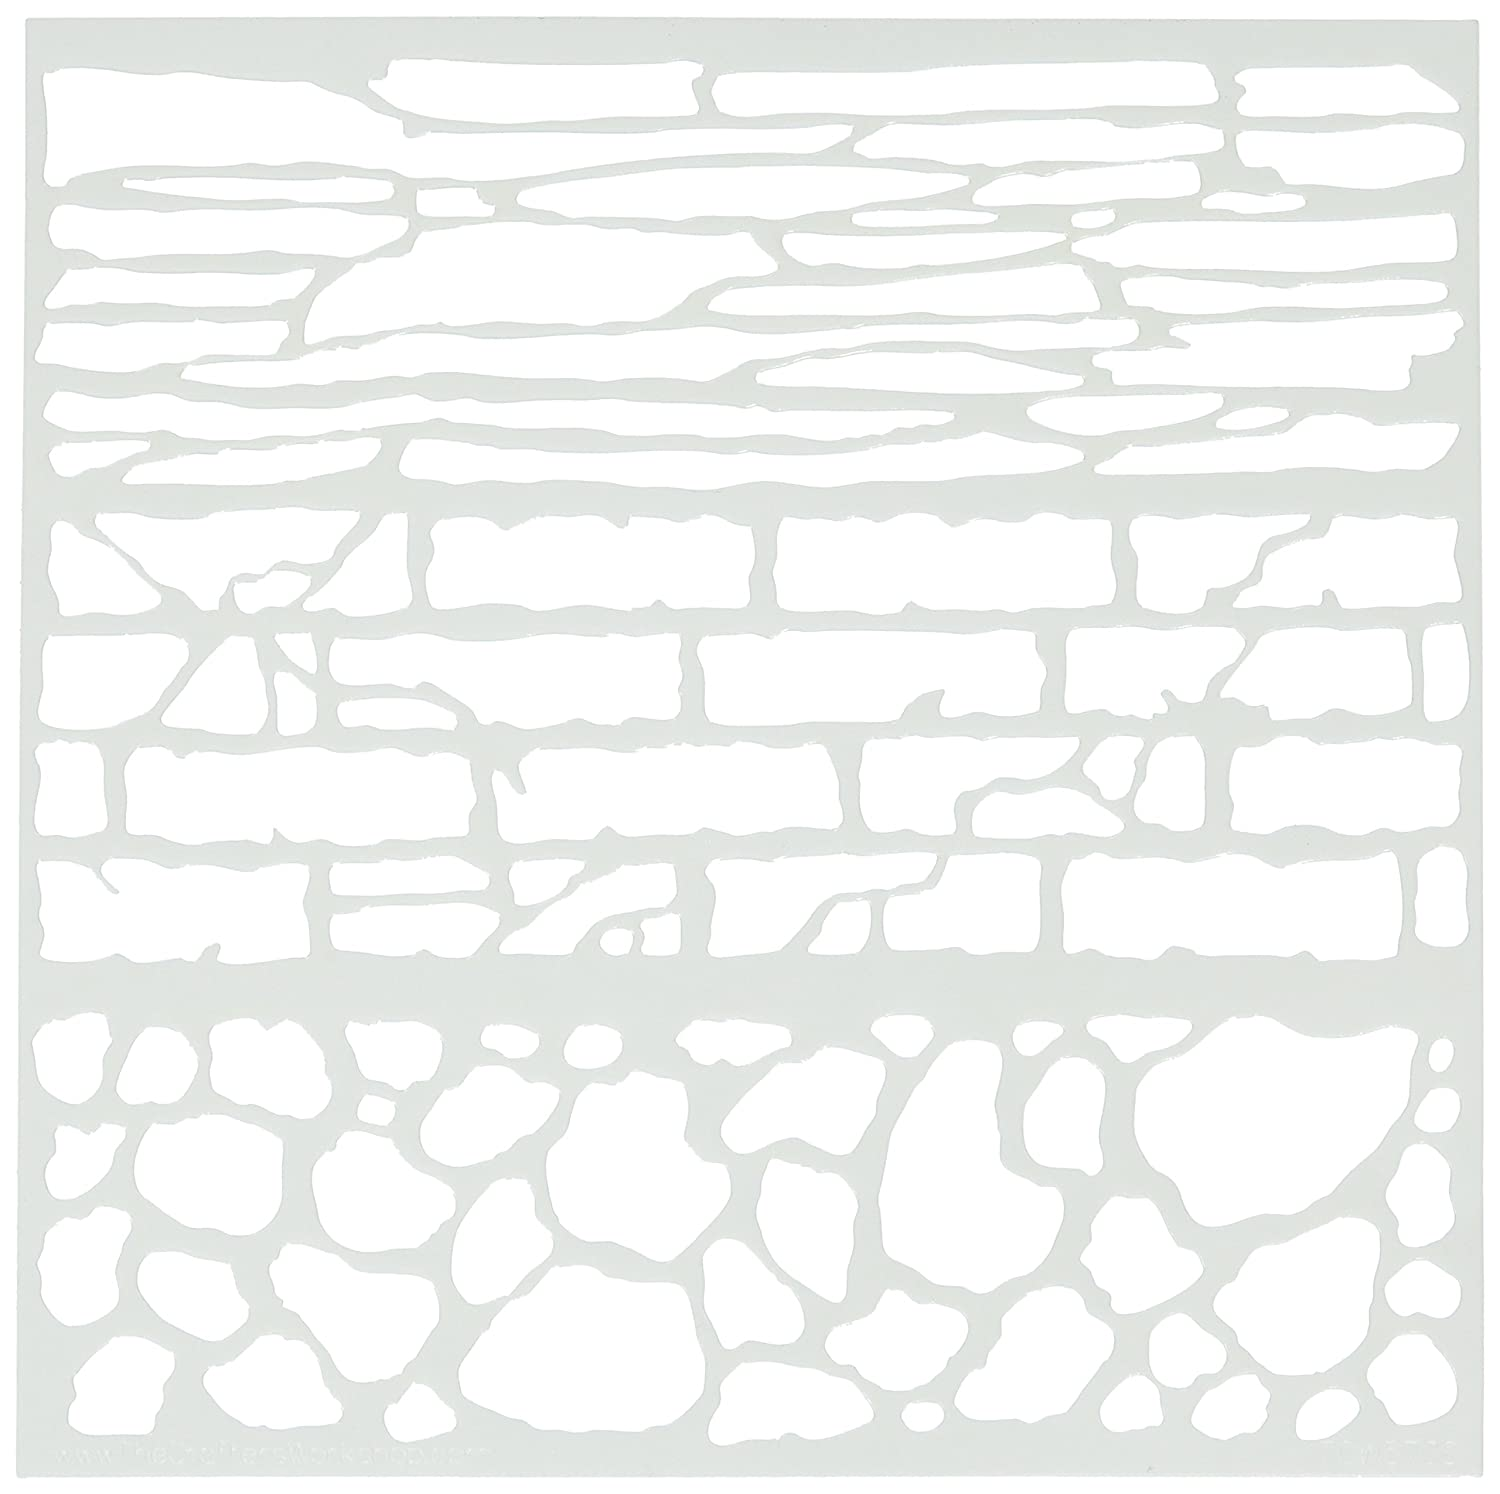 Crafters Workshop Rock Wall Crafter's Workshop Template, 6 by 6 6 by 6 TCW6X6-573